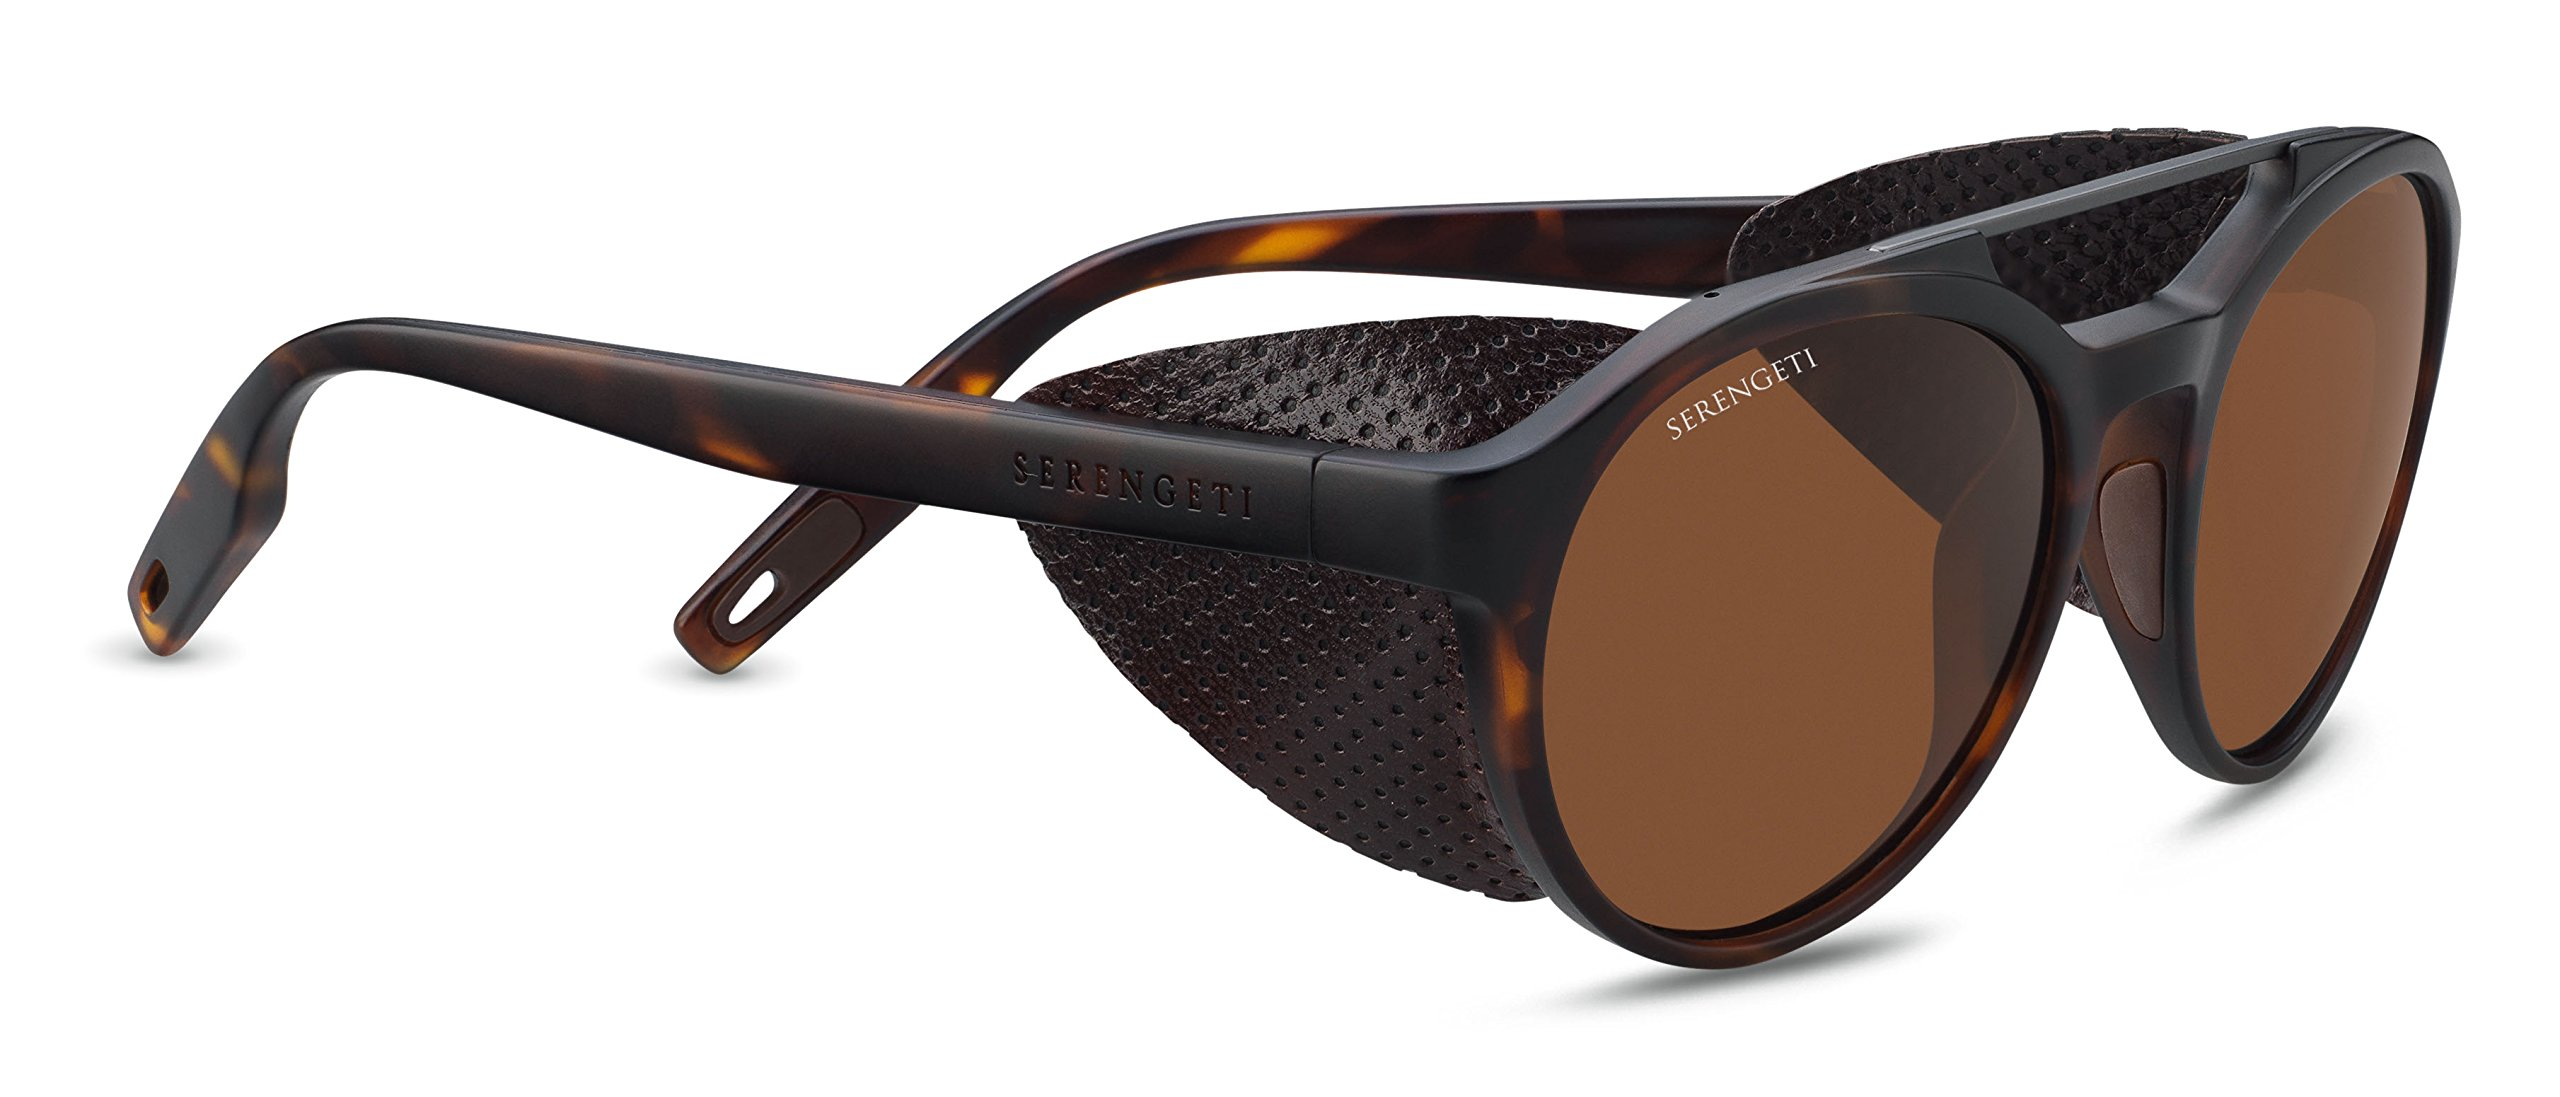 Serengeti Leandro Glacier Sunglasses Satin Tortoise Frame/Satin Dark Gunmetal, Brown